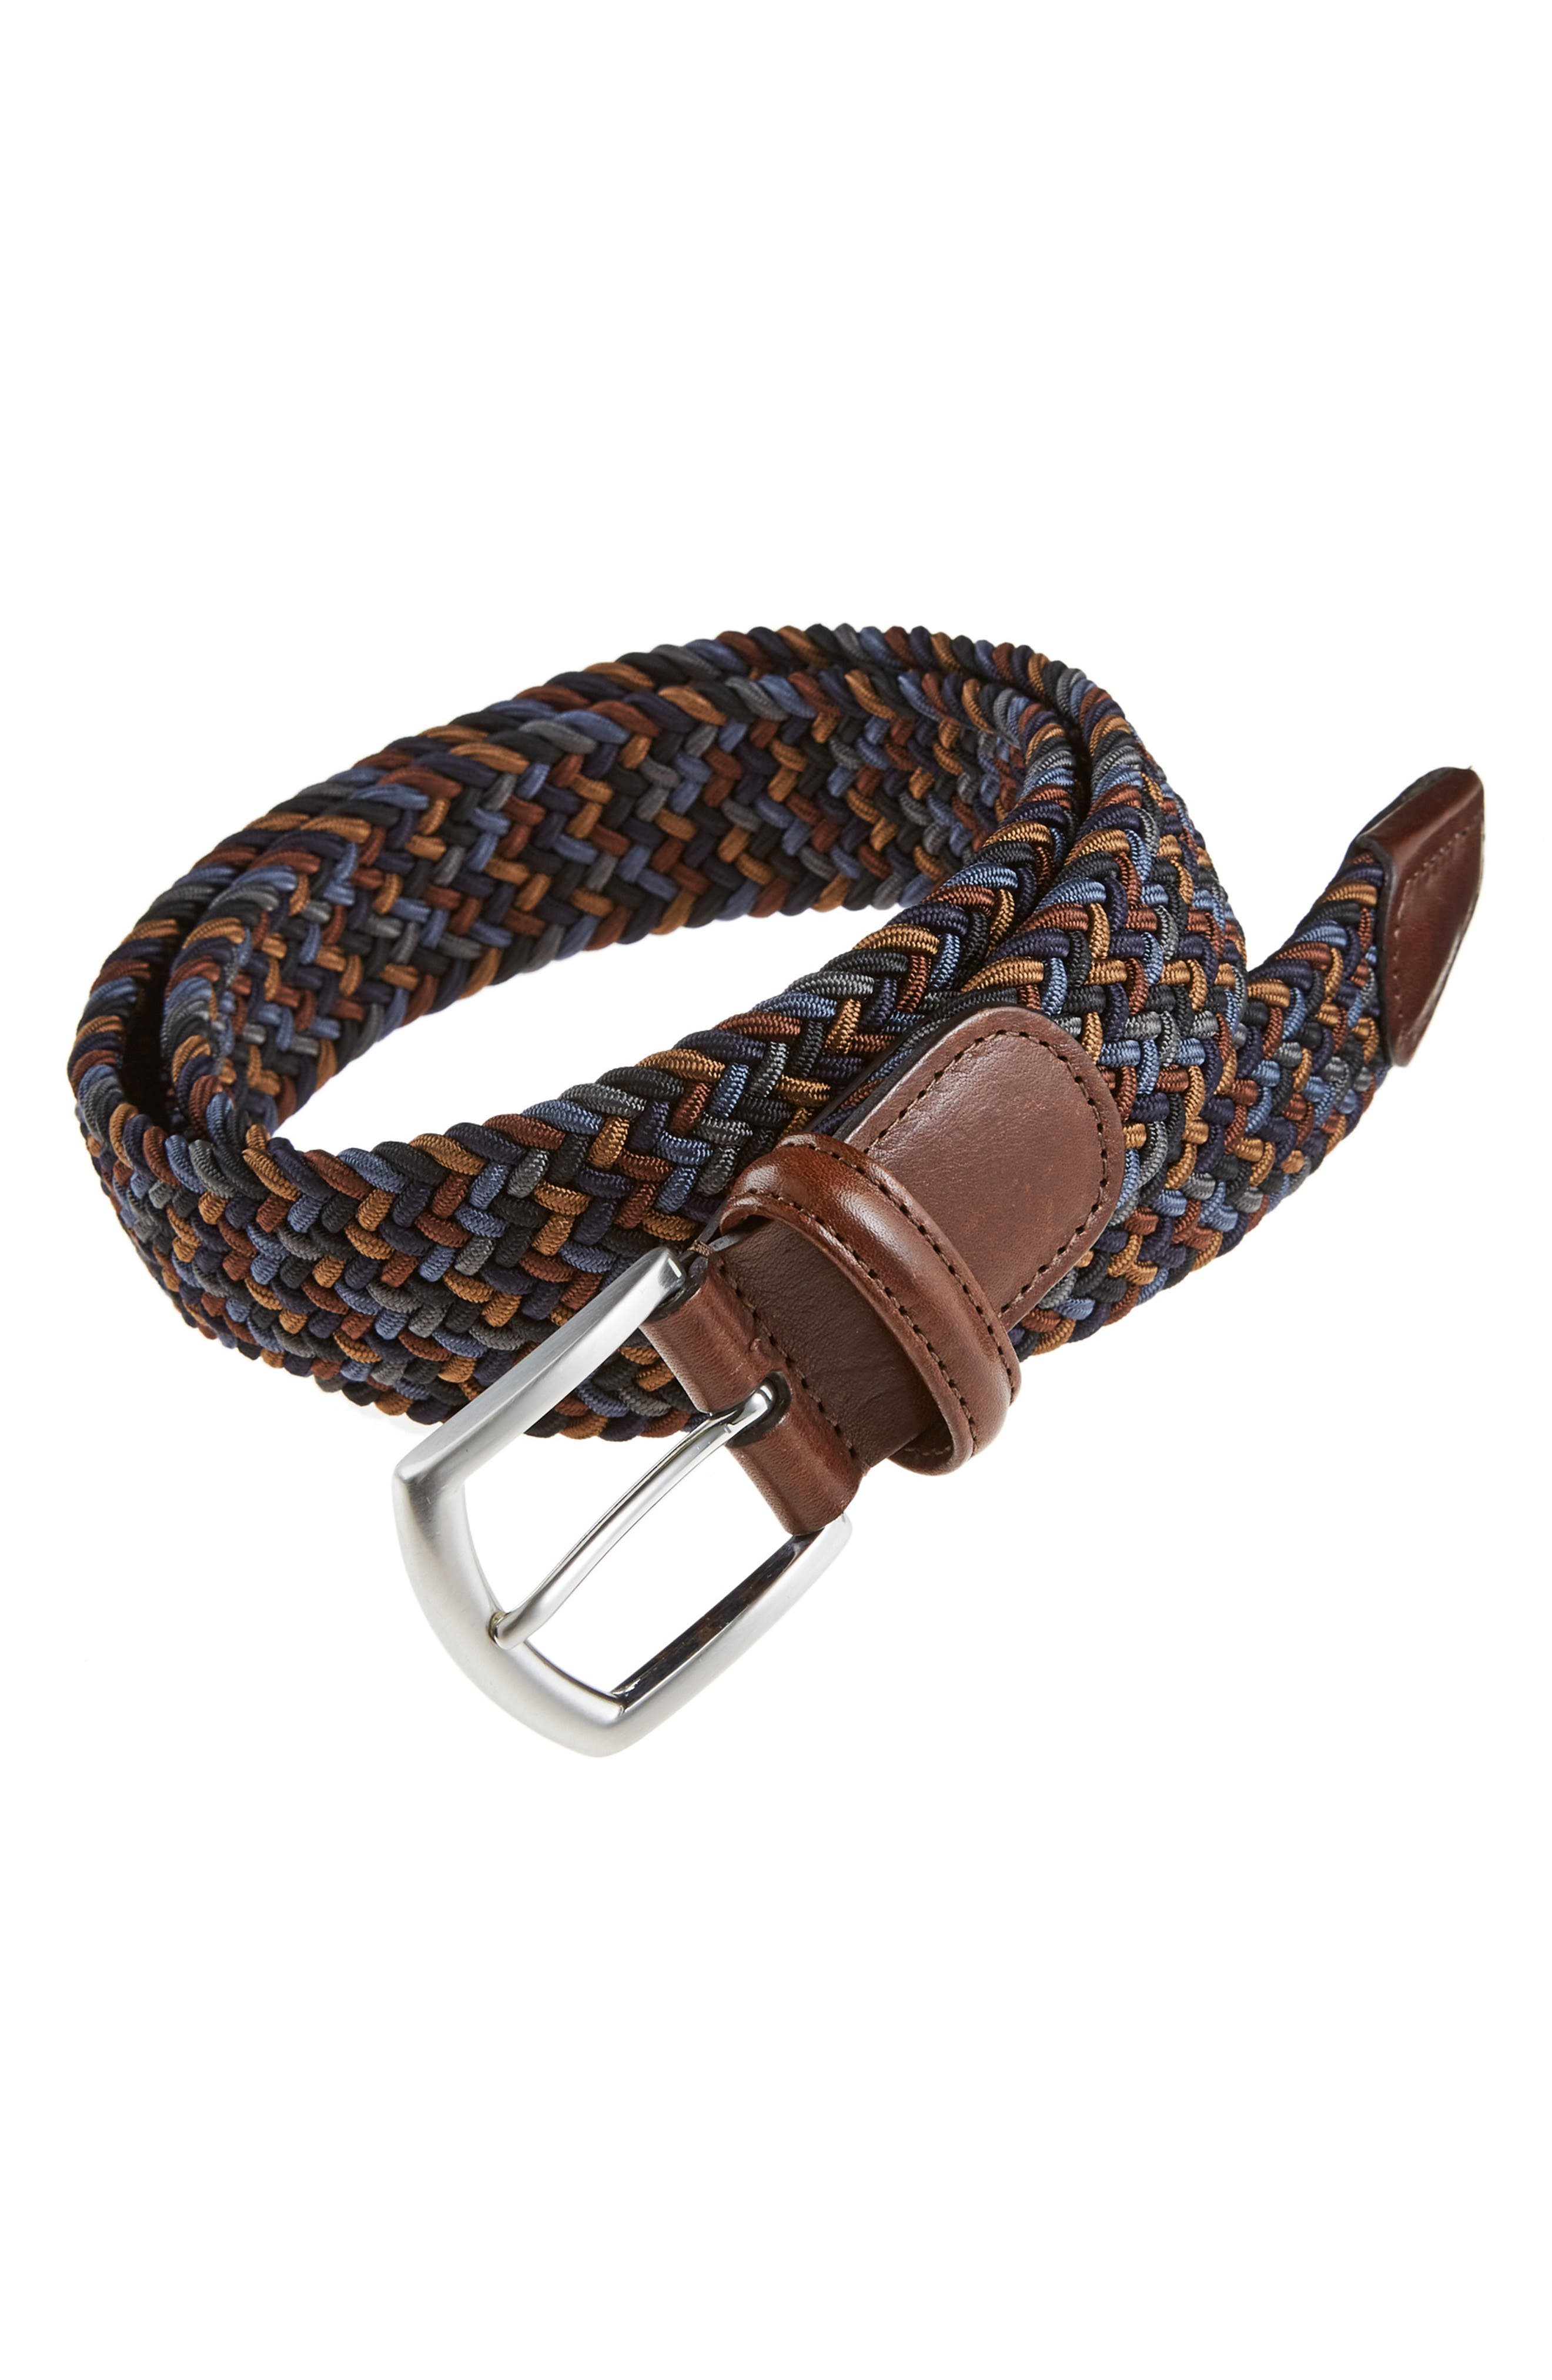 Andersons Multi-Color Stretch Woven Leather,                             Main thumbnail 1, color,                             BROWN MULTI